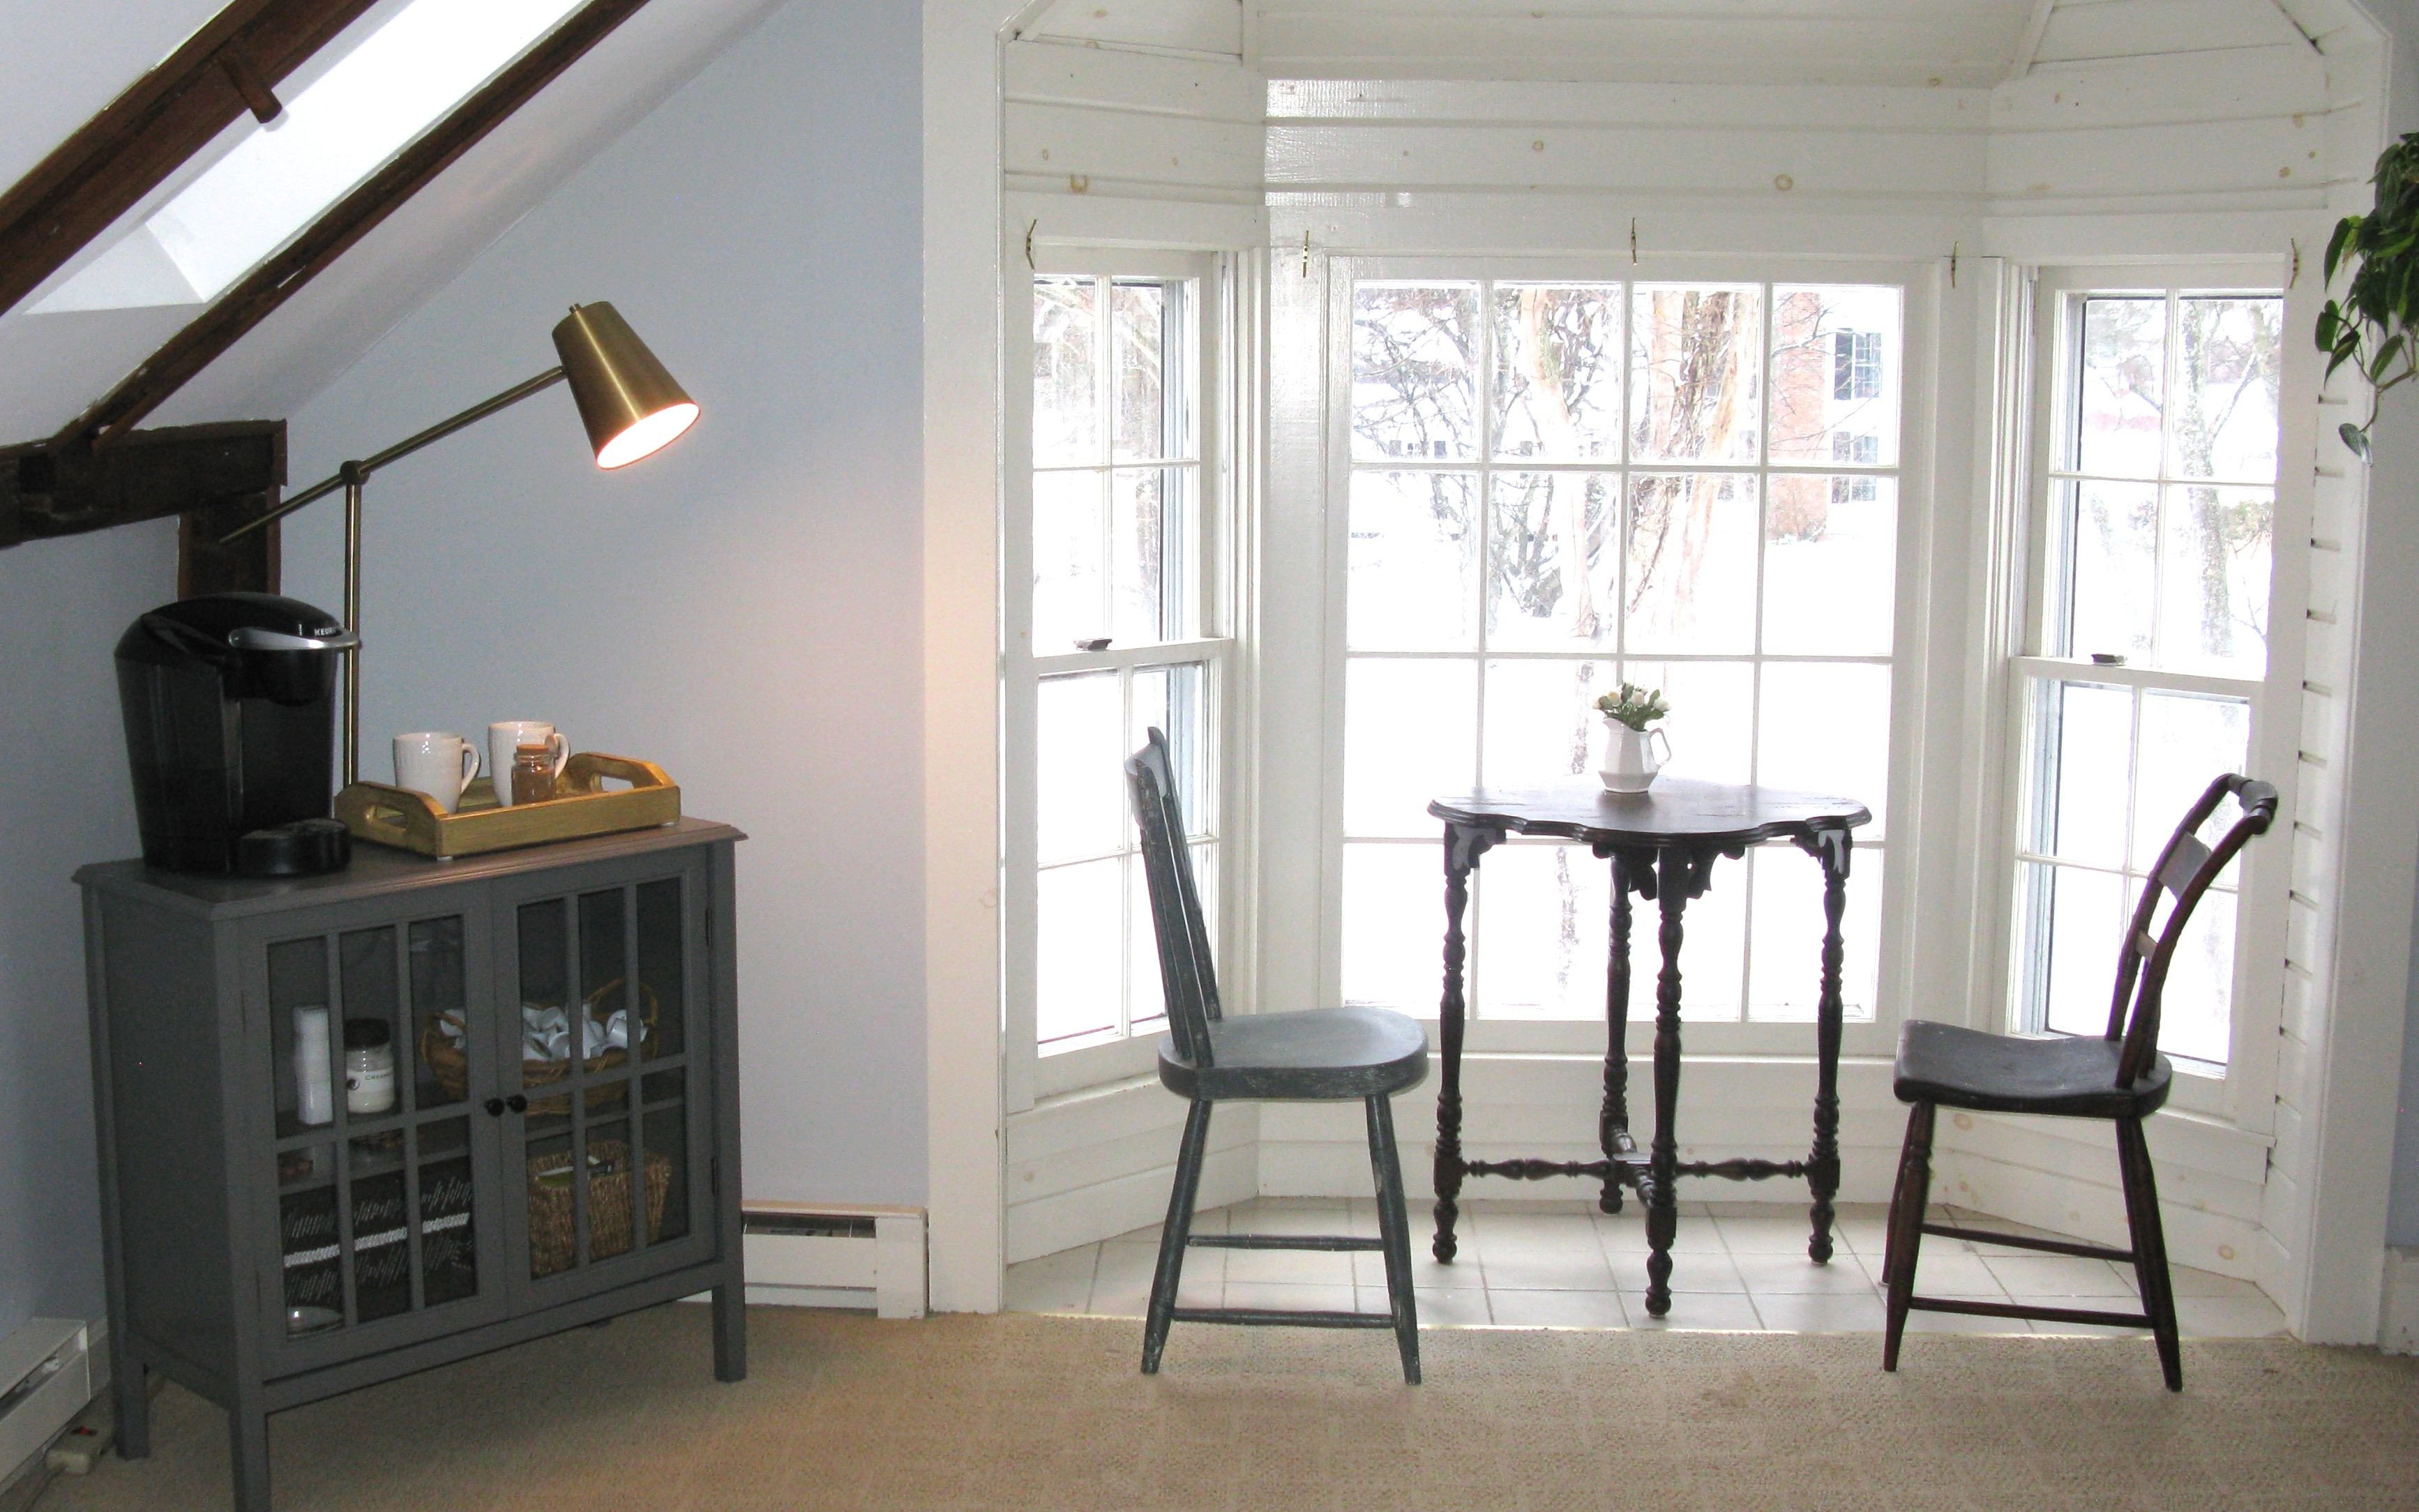 Bedroom Sitting area Ideas New Guest Bedroom Coffee Station Bay Window Bistro Small